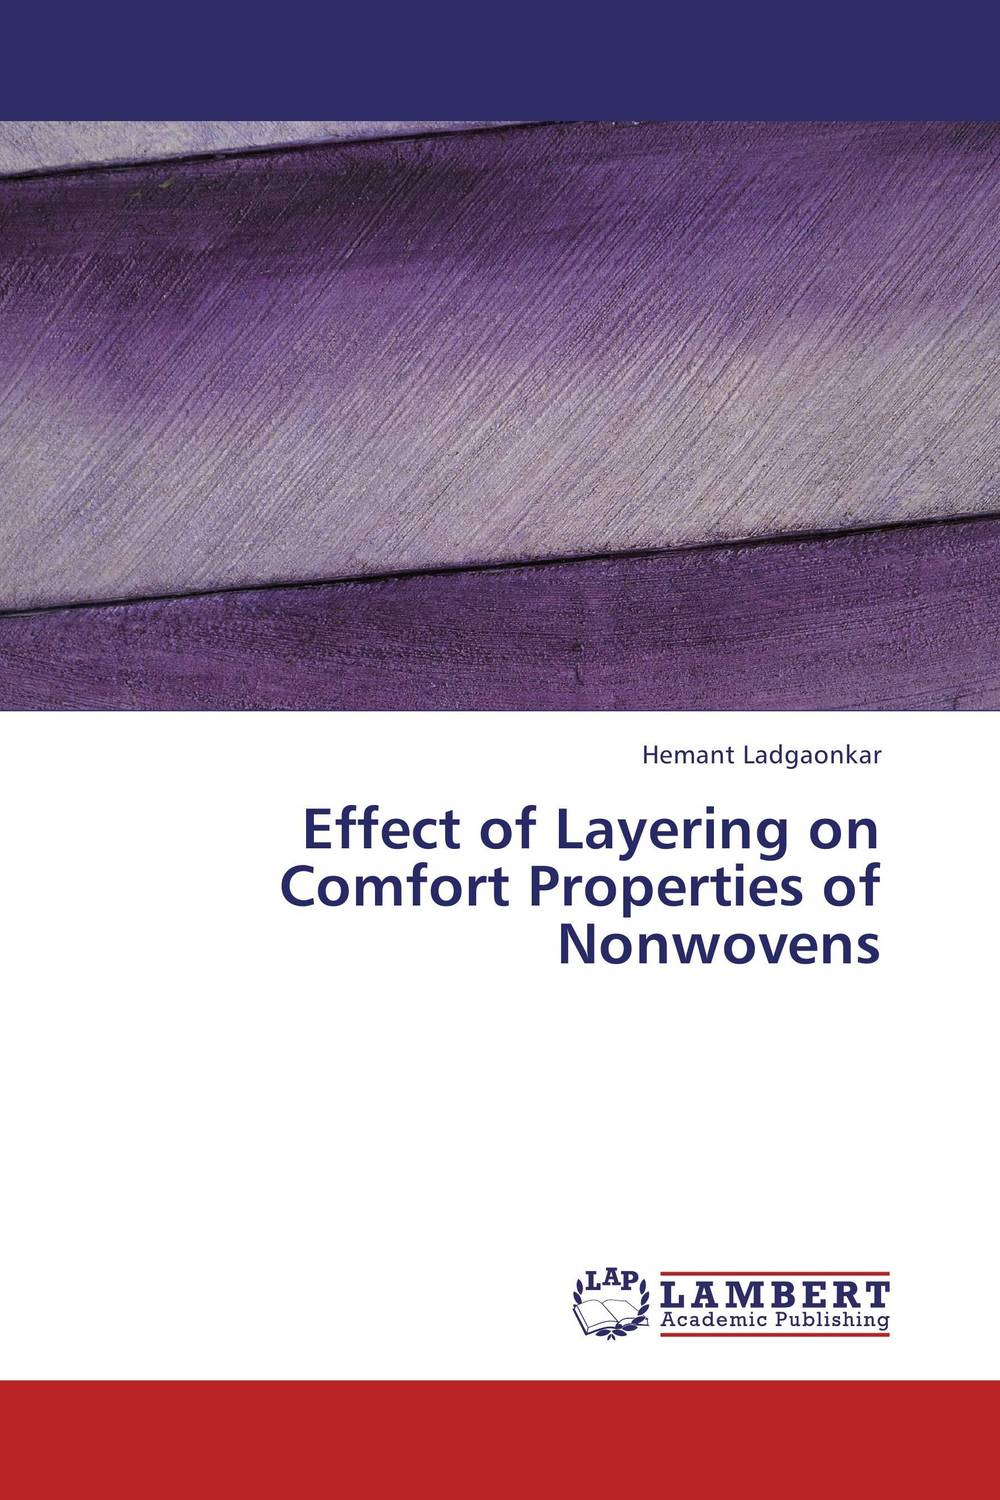 Effect of Layering on Comfort Properties of Nonwovens